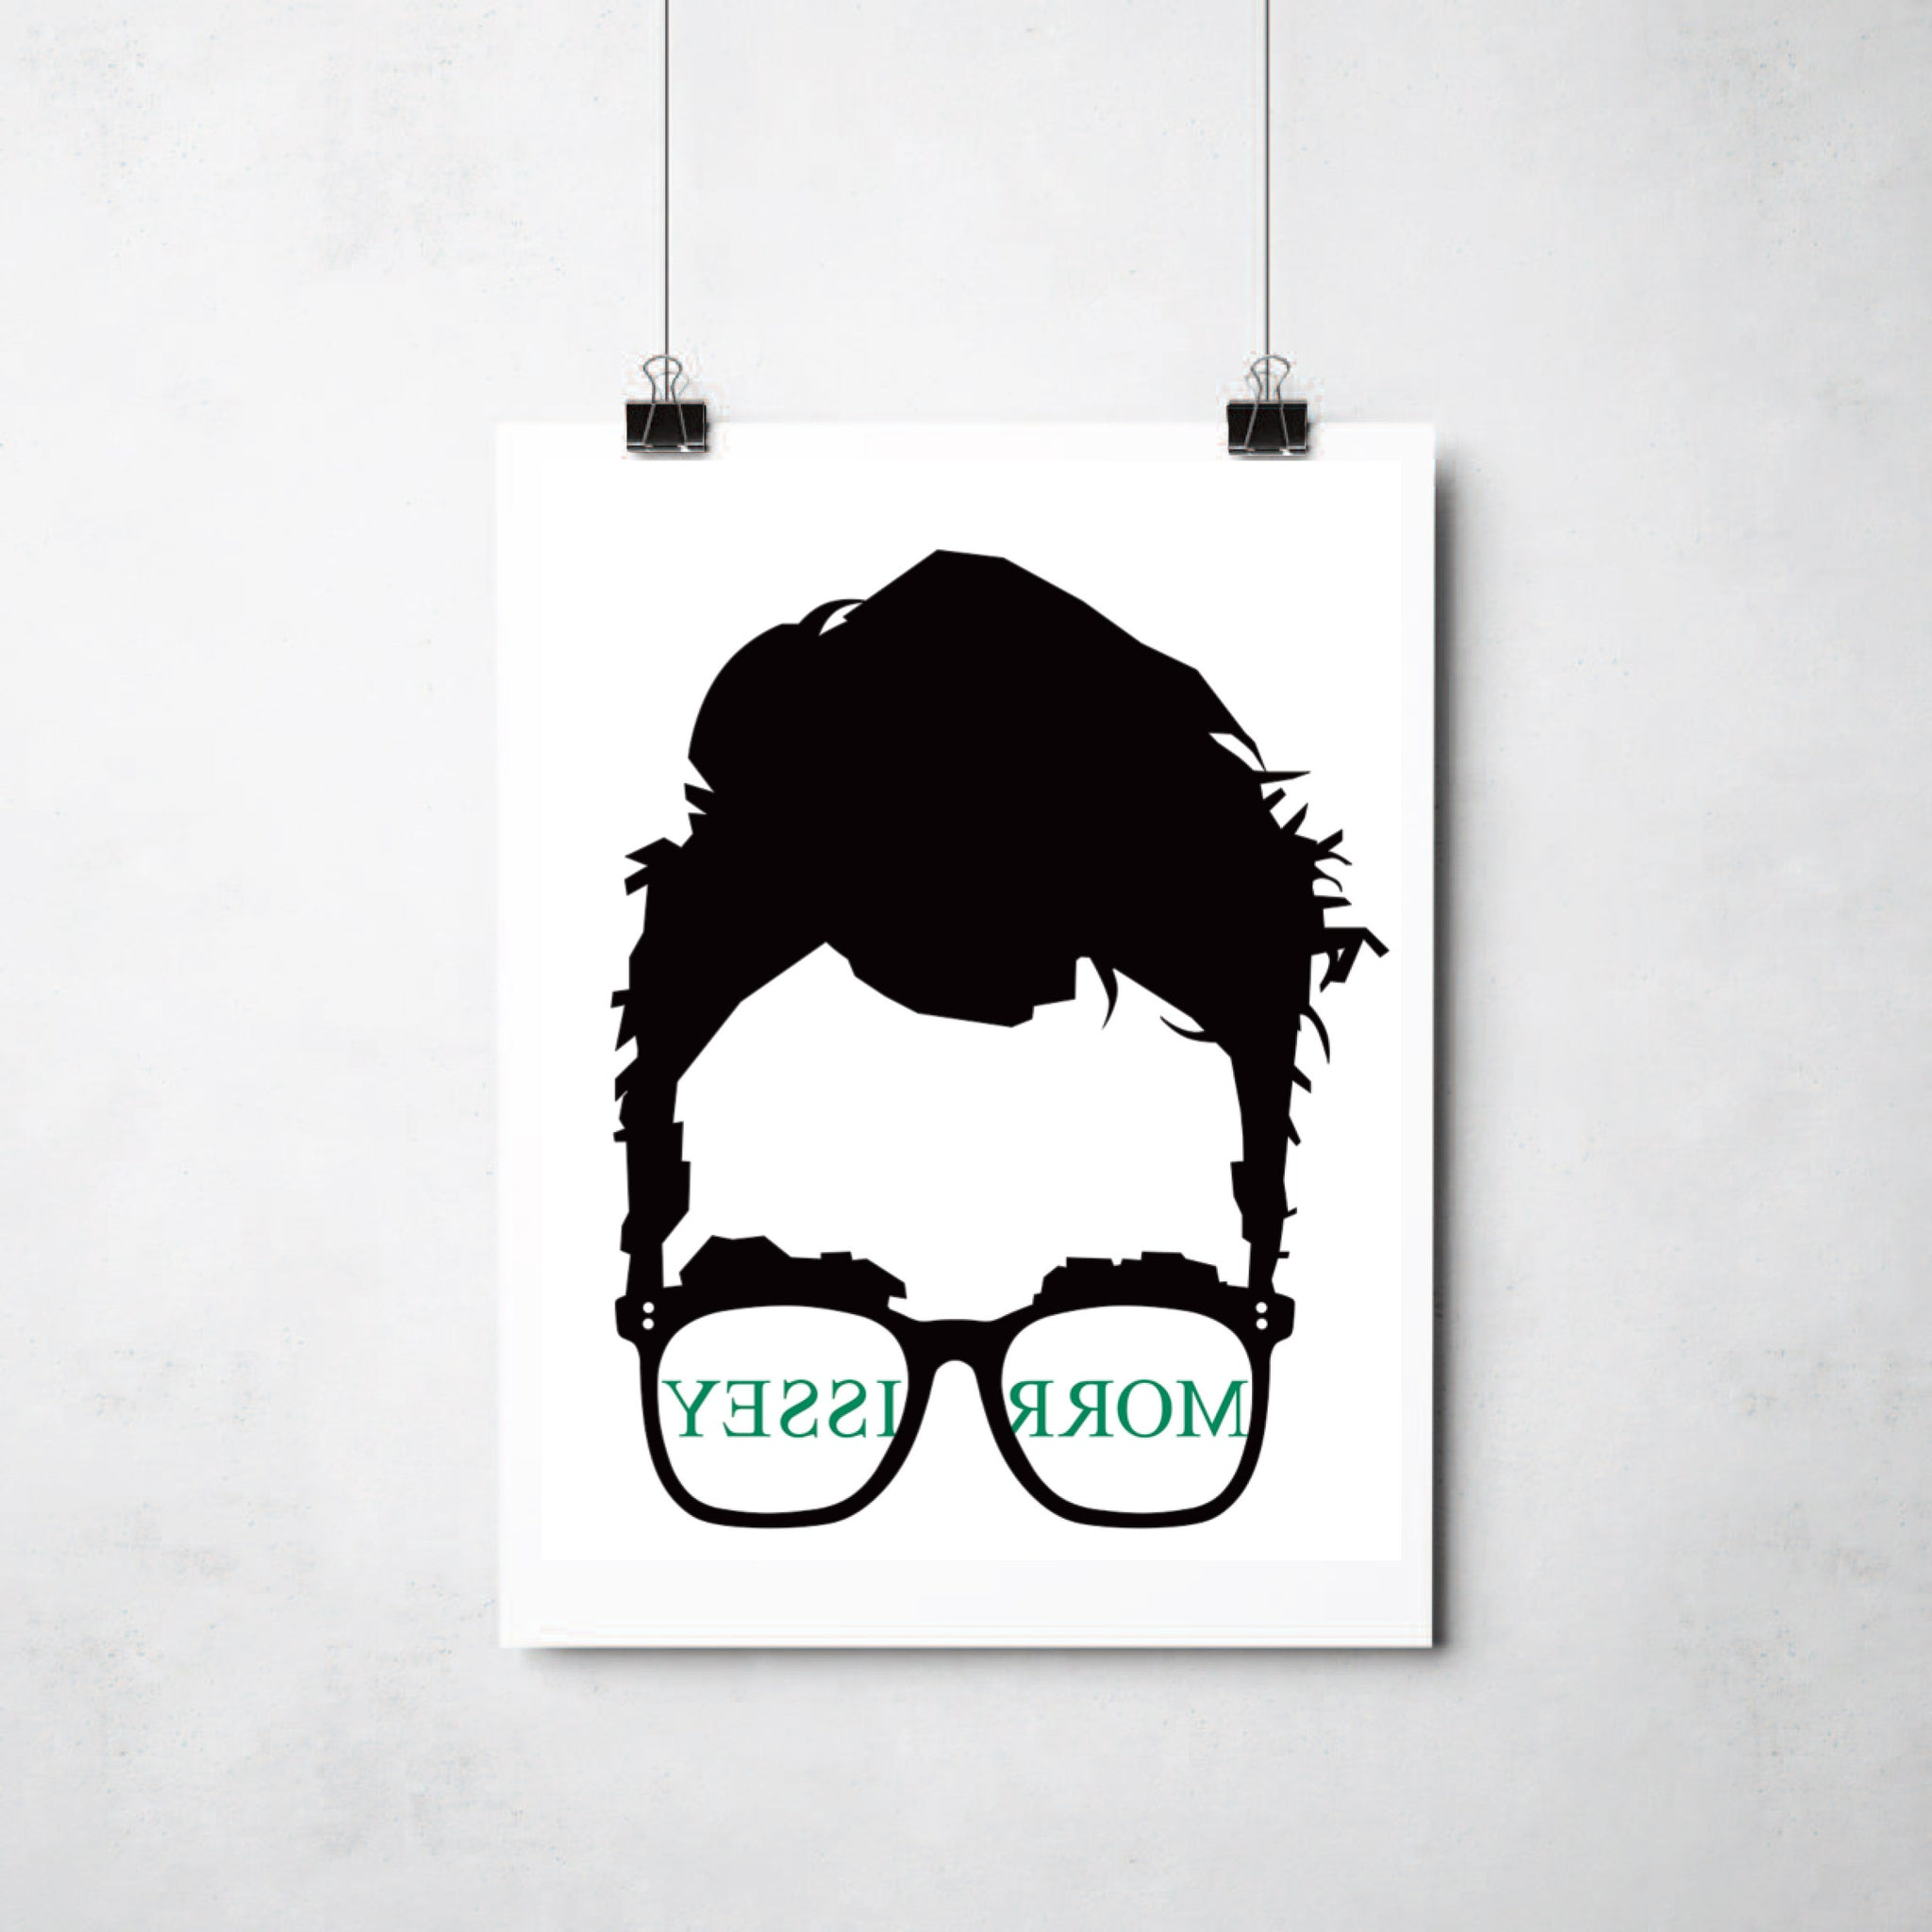 Morrissey print by This Charming Manc